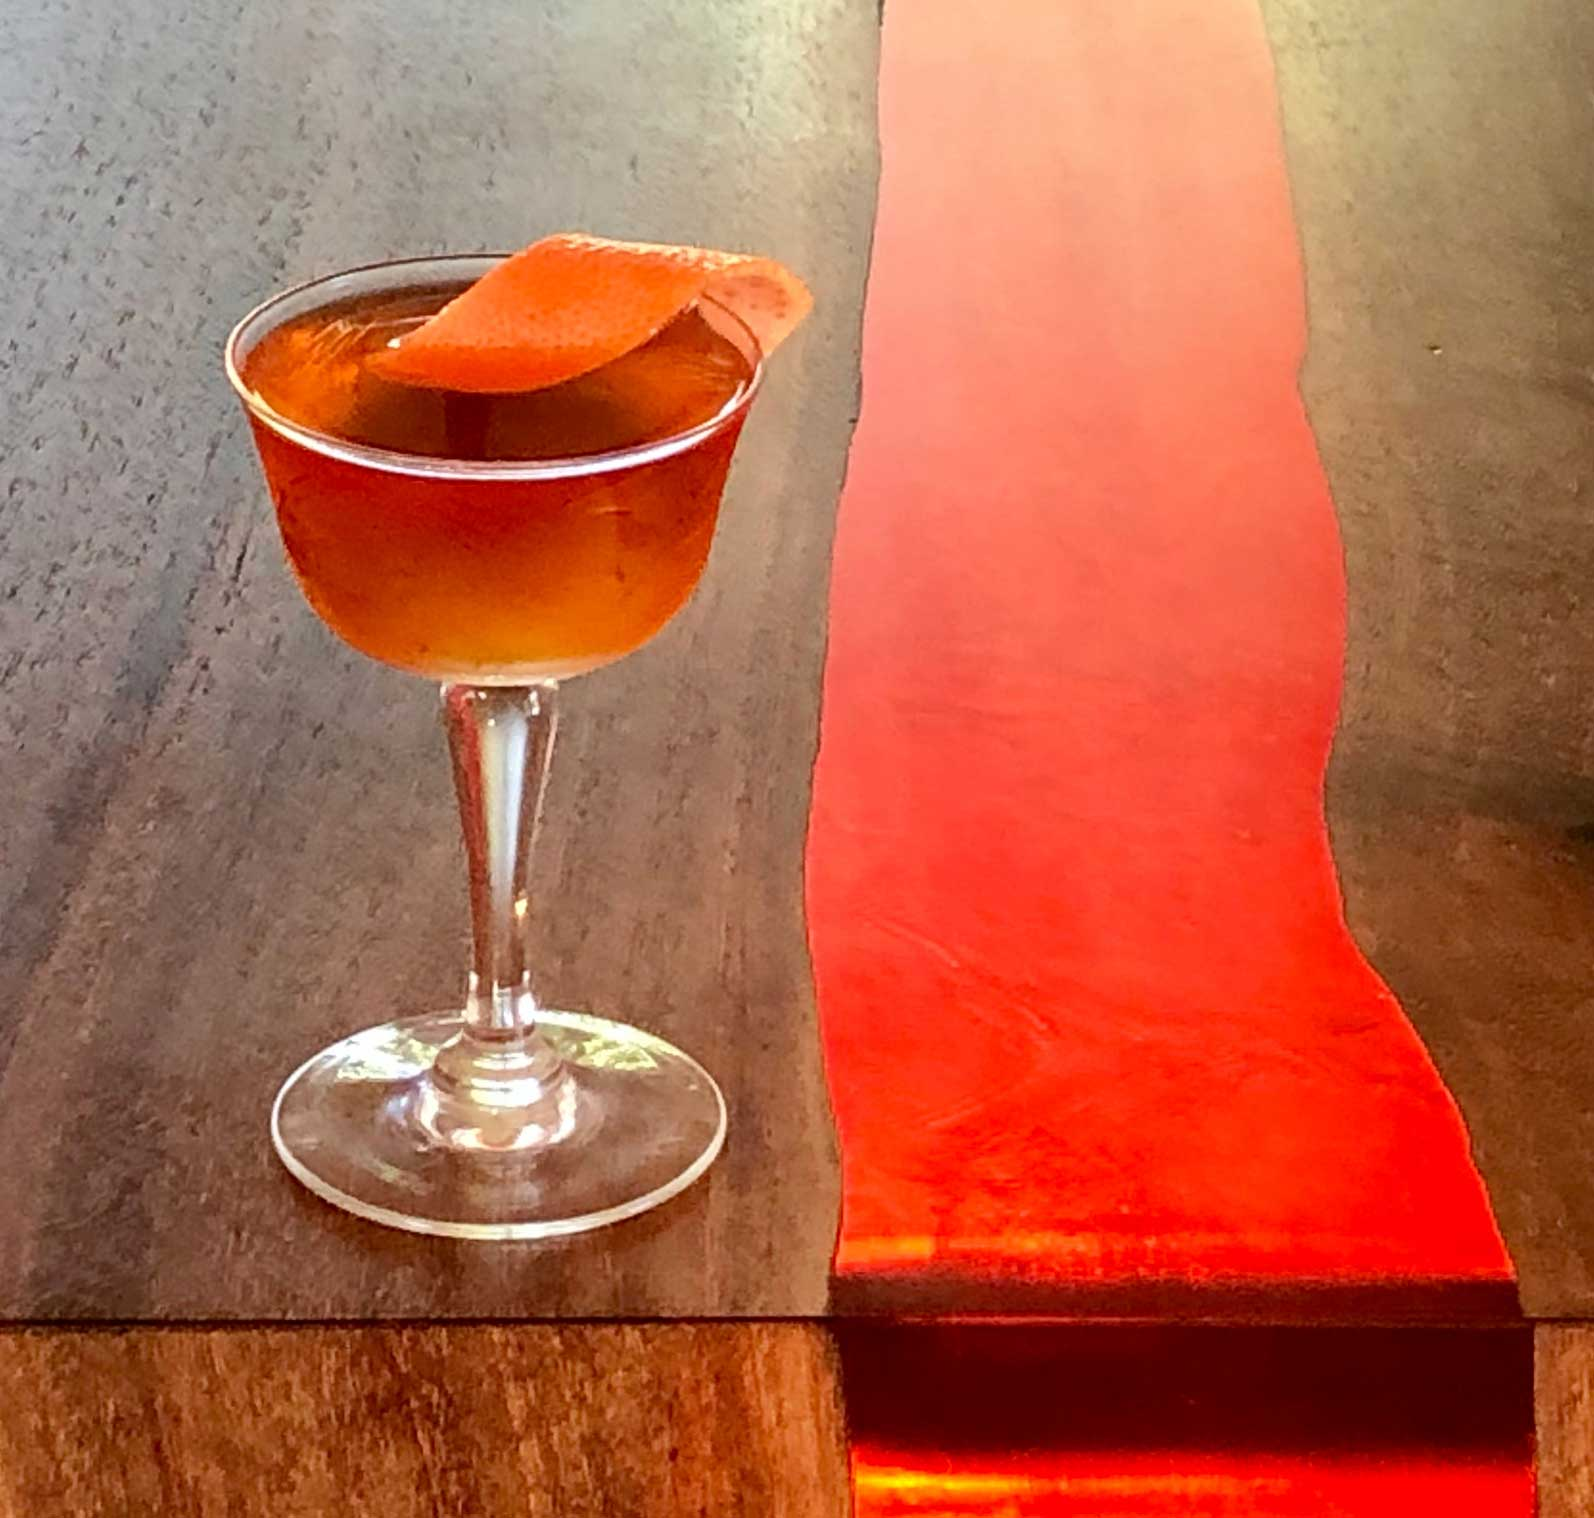 An example of the Rum al Pastor, the mixed drink (cocktail) featuring Plantation Pineapple Original Dark Rum, Amaro Sfumato Rabarbaro, and orange bitters; photo by Lee Edwards